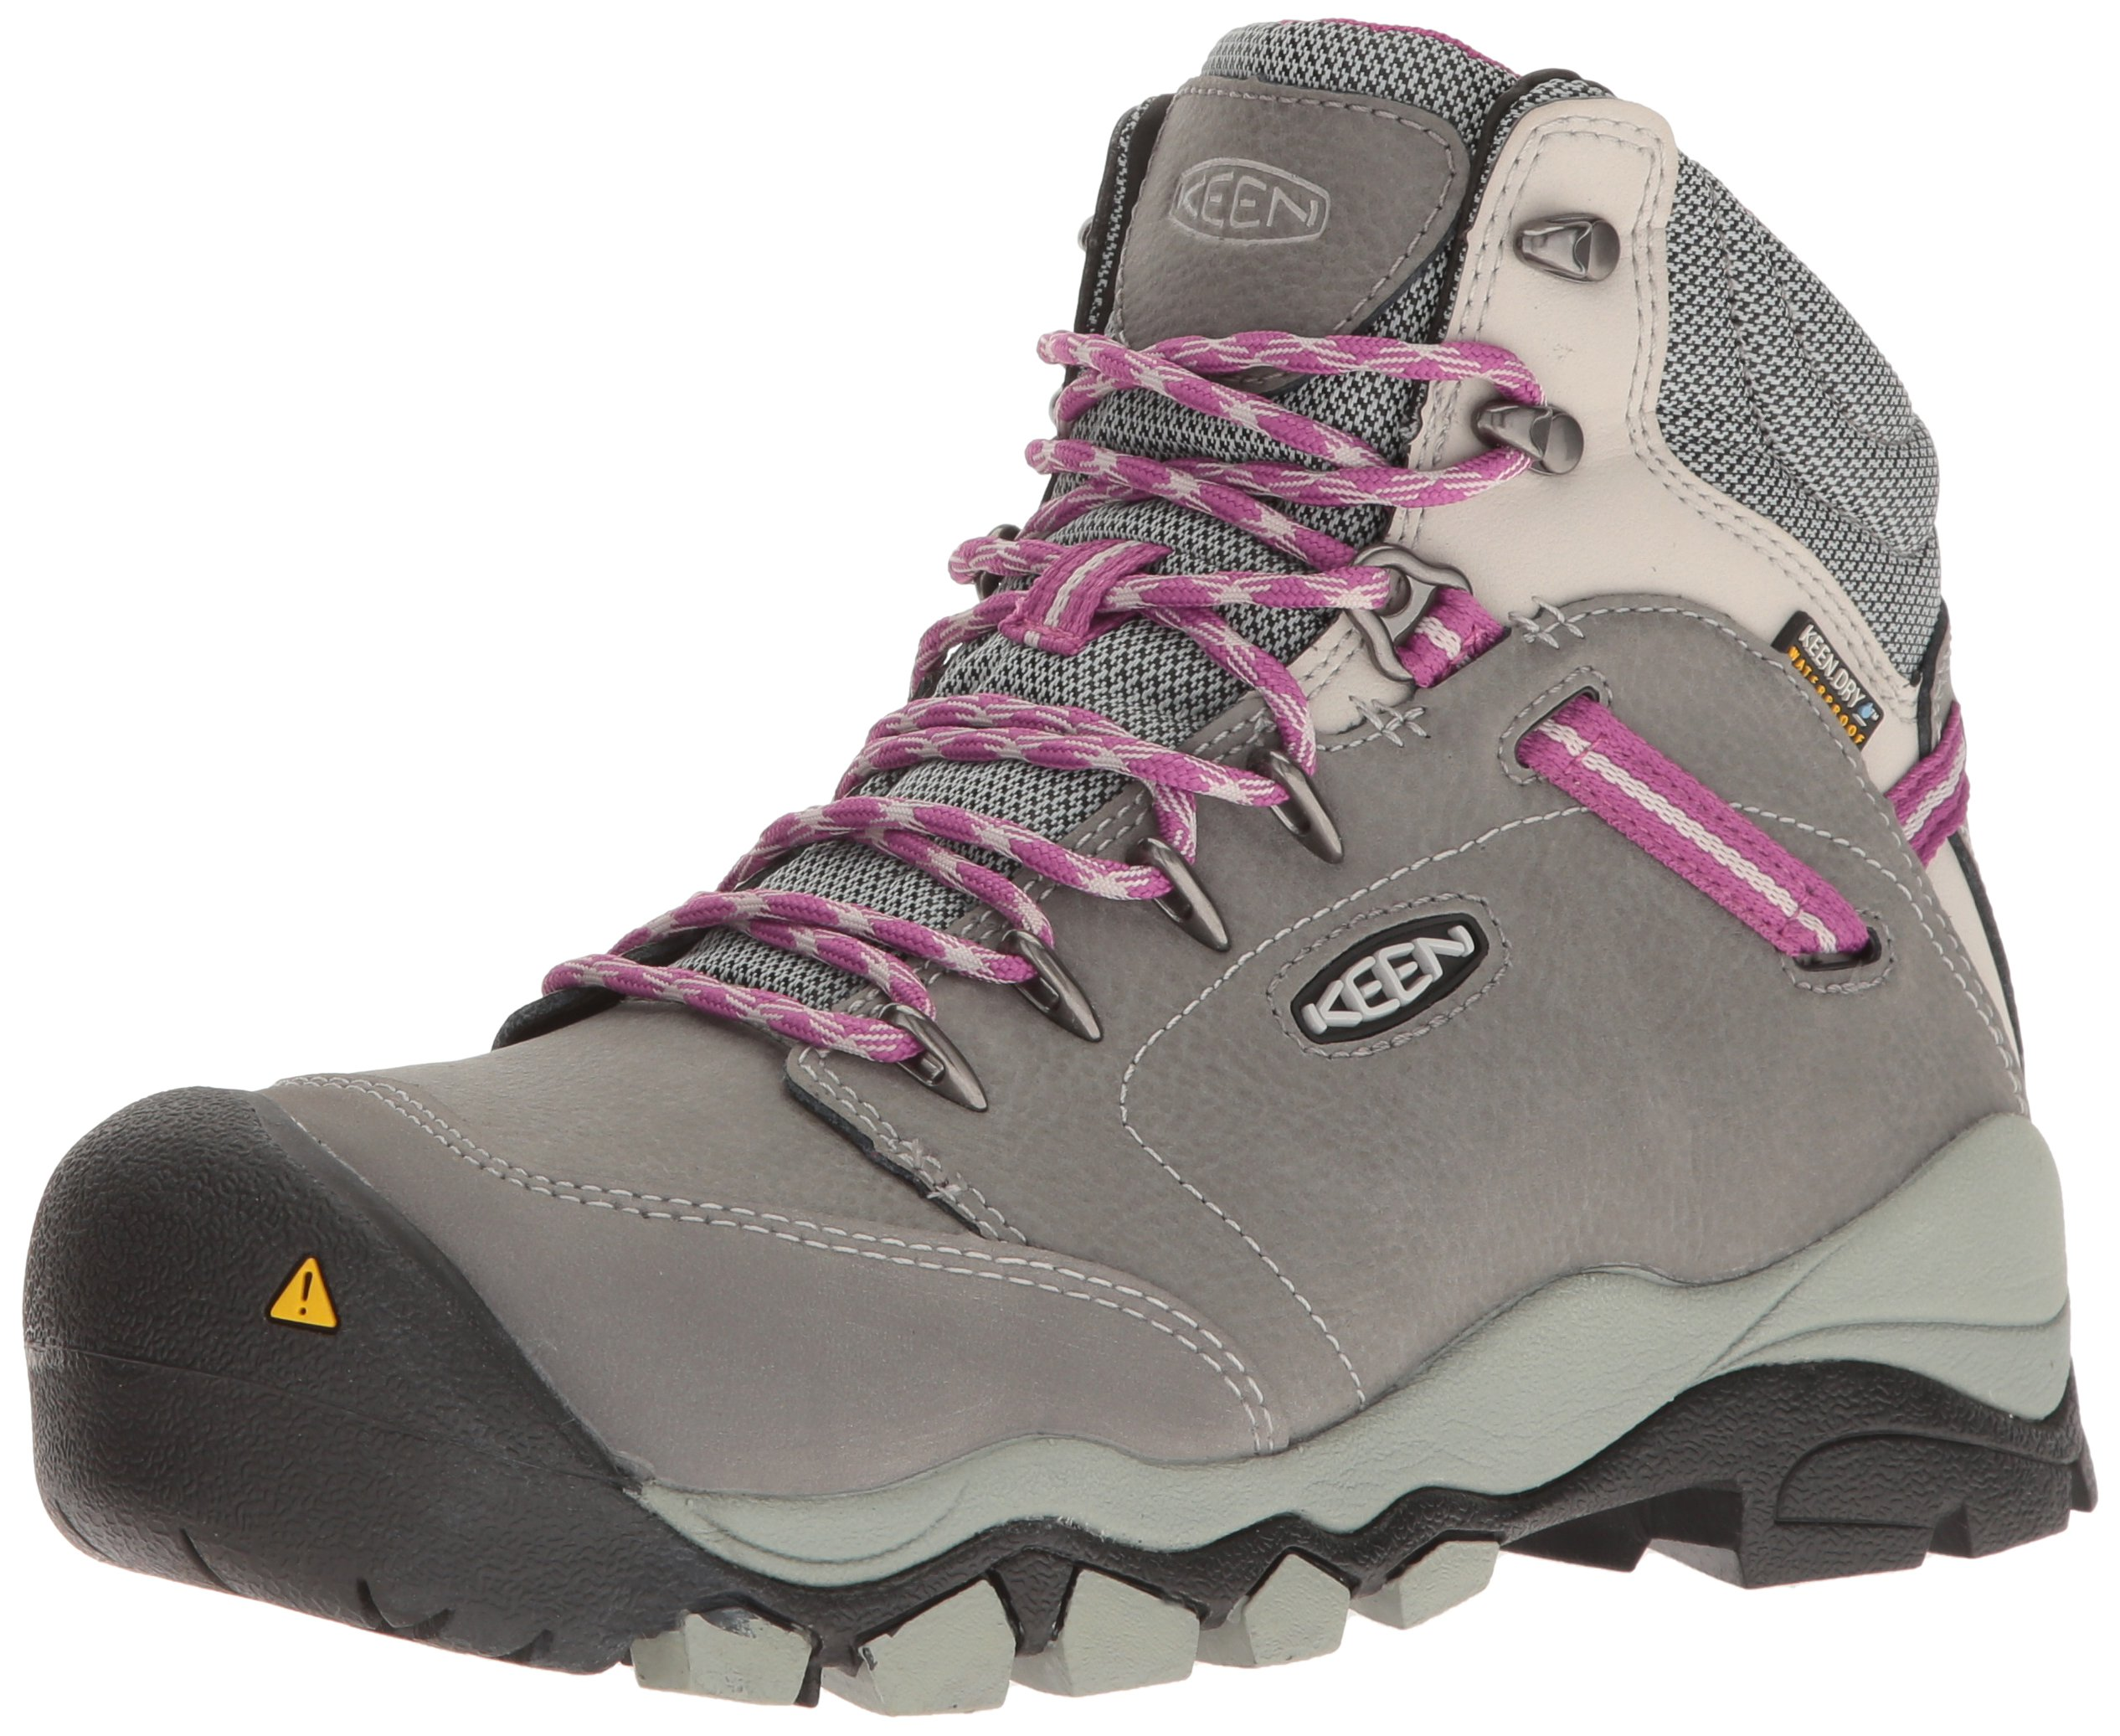 Keen Utility Women's Canby AT Waterproof Industrial and Construction Shoe, Gargoyle/Vapor, 6.5 M US